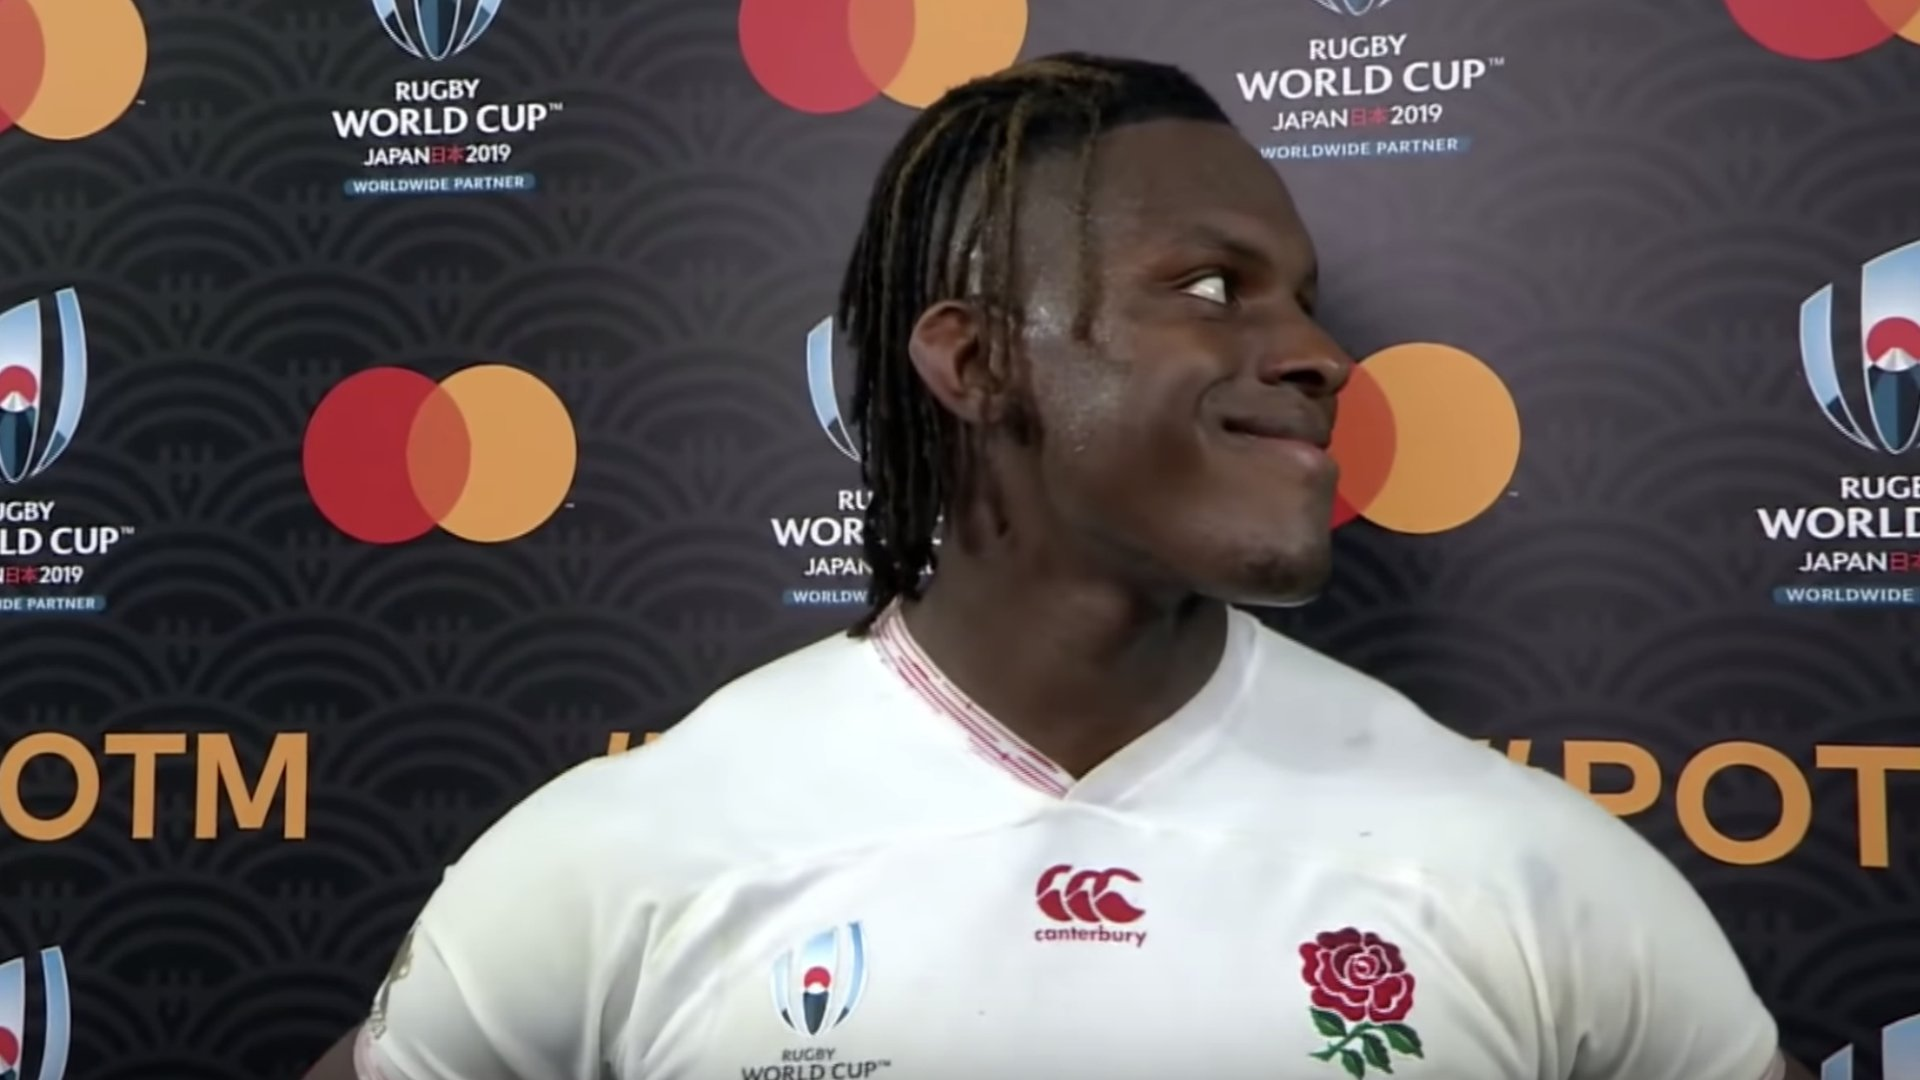 This is why Maro Itoje will be England's next long-term captain